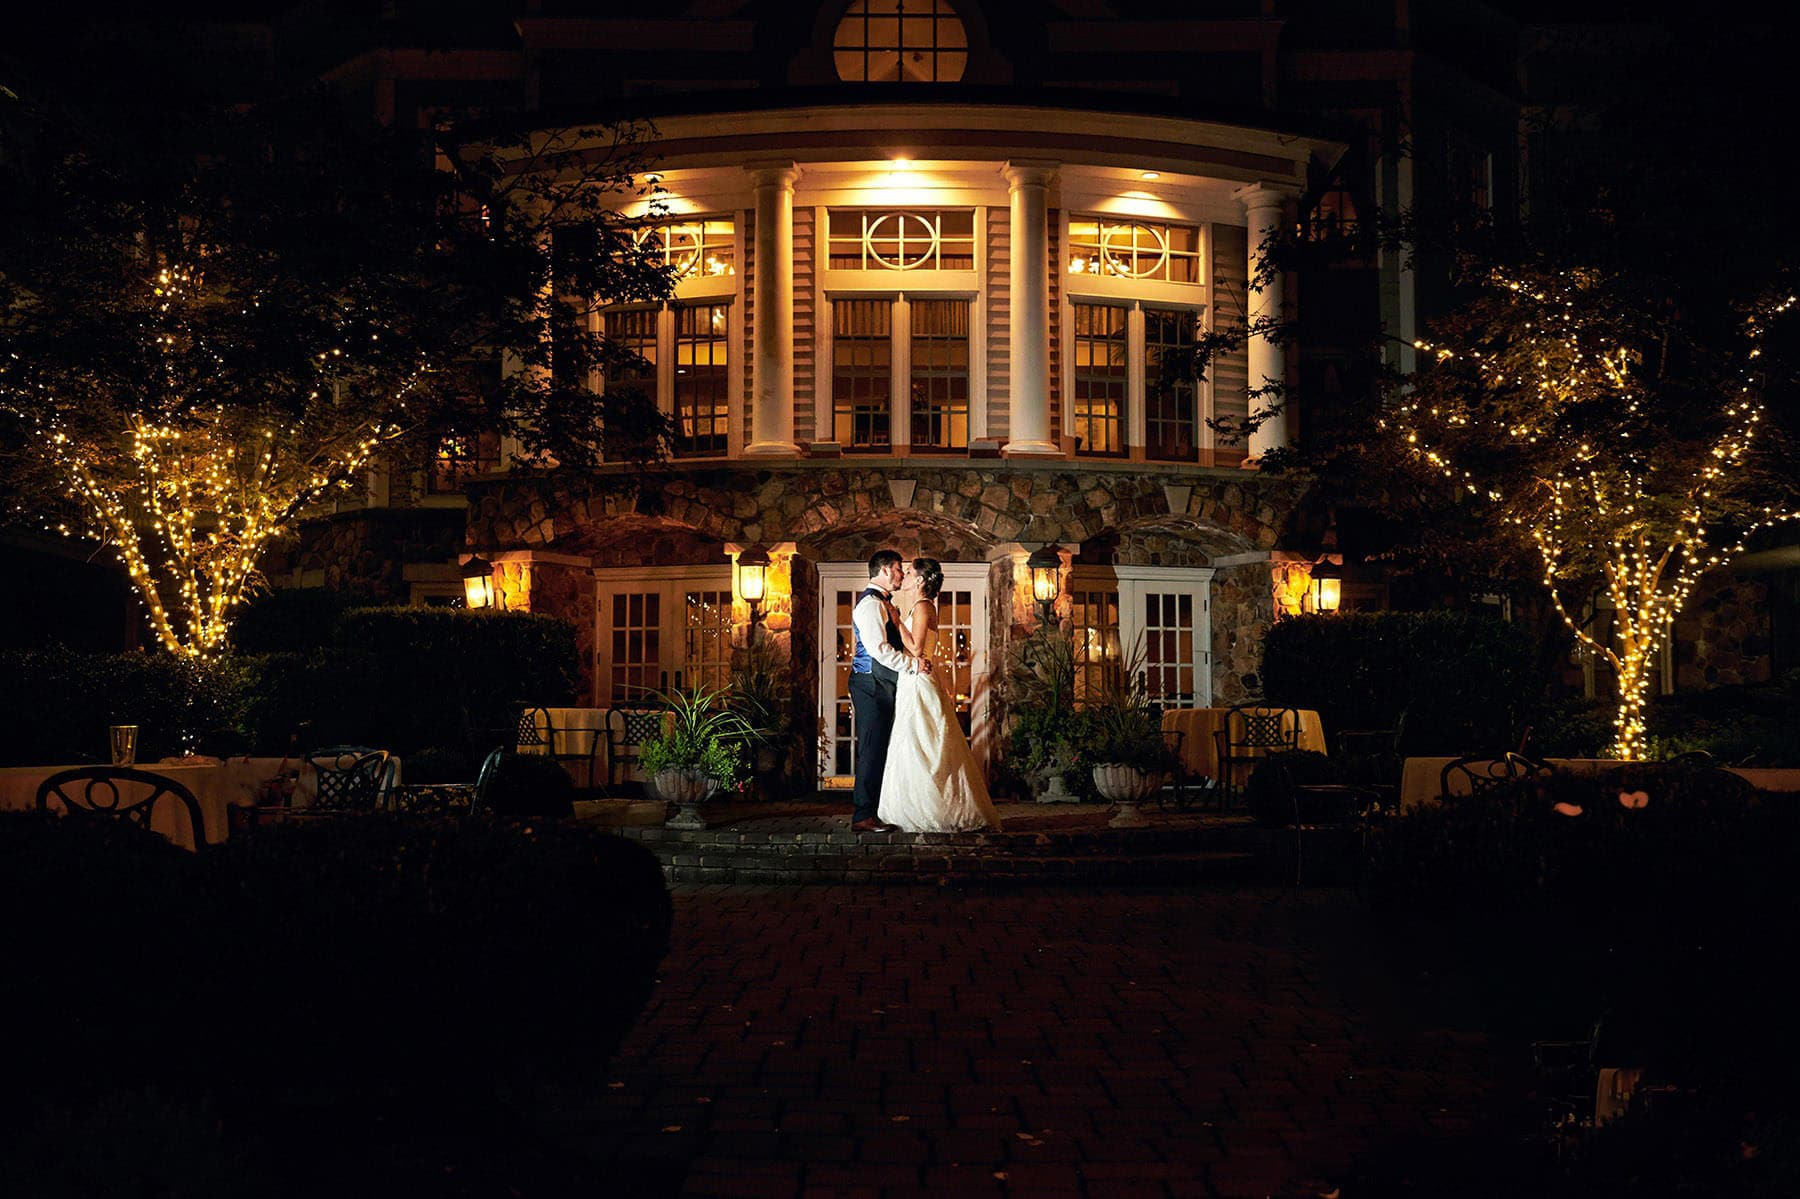 olde mill in wedding photo at night